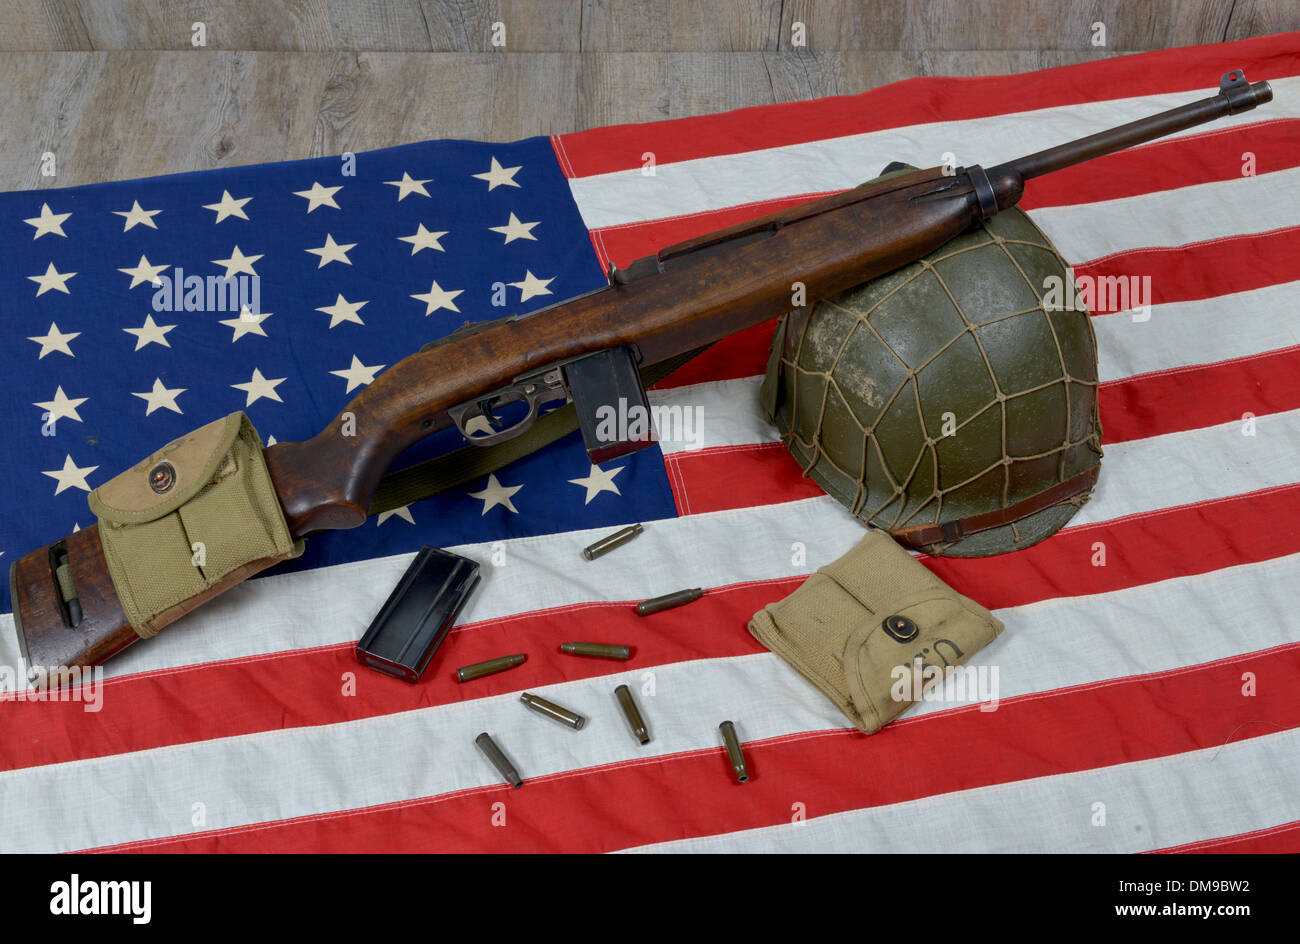 carbine usm1 with some bullets and military helmet - Stock Image